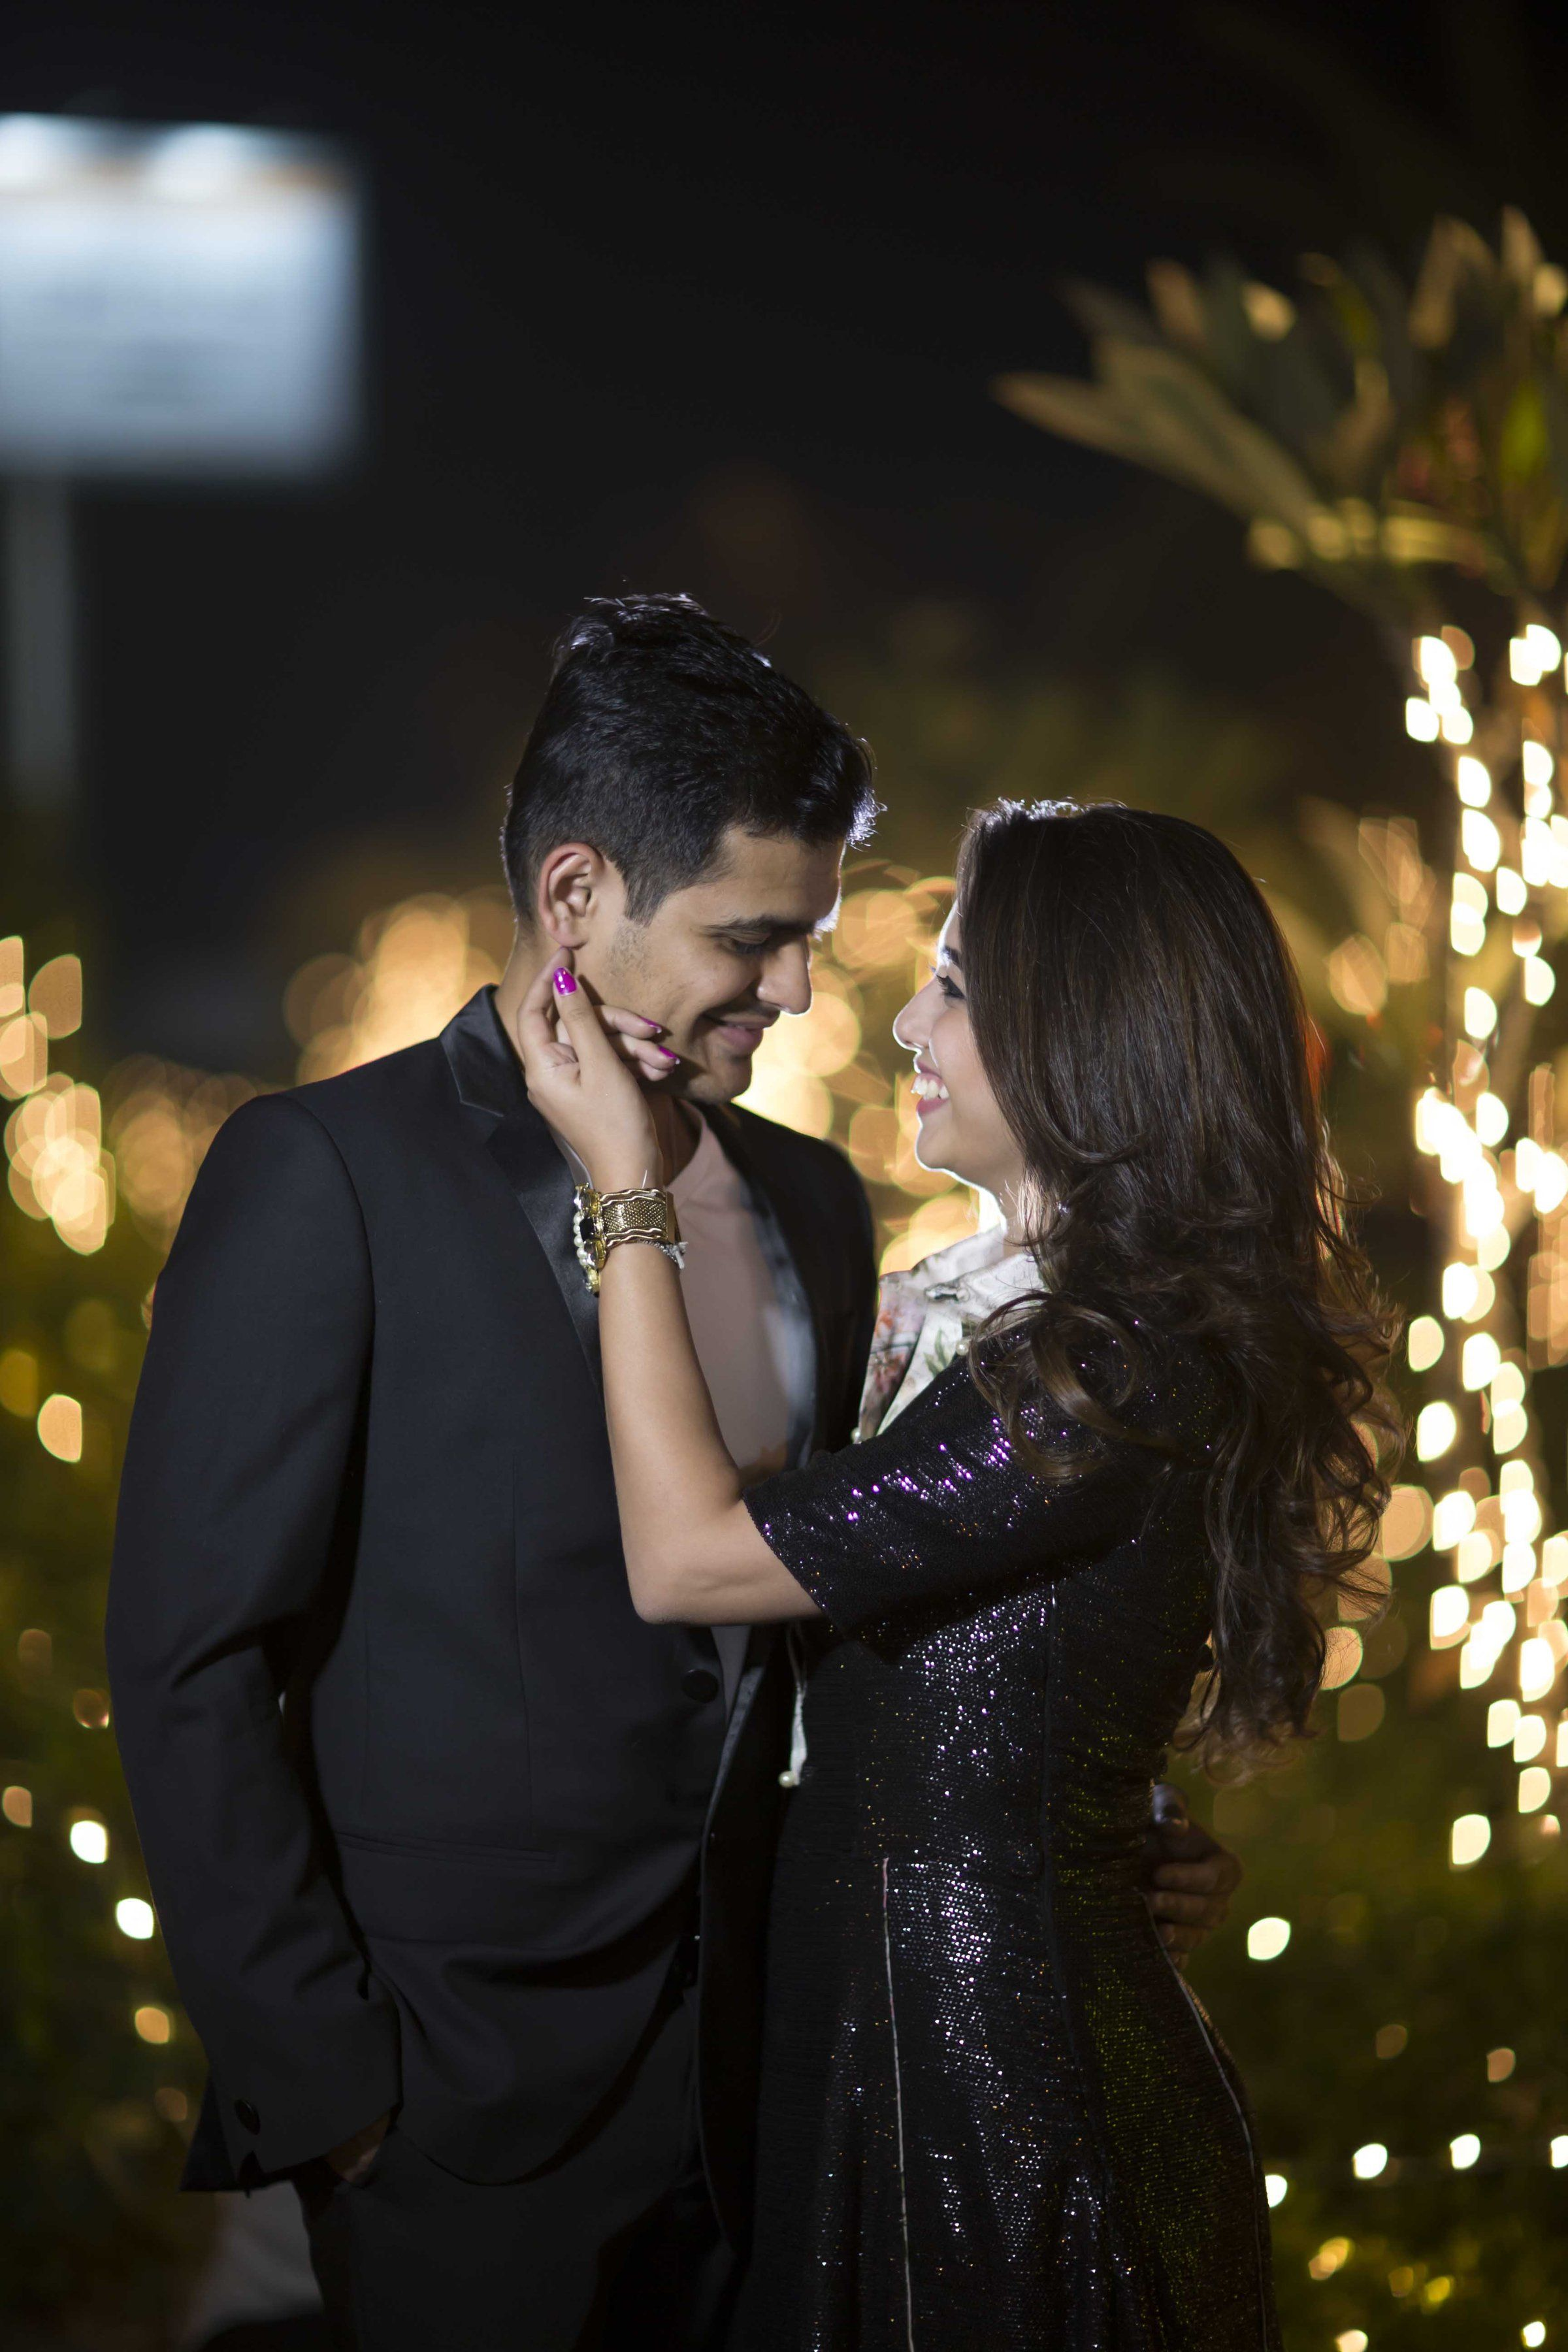 The Couple Dressed In Glamorous Outfits For Their Pre Wedding